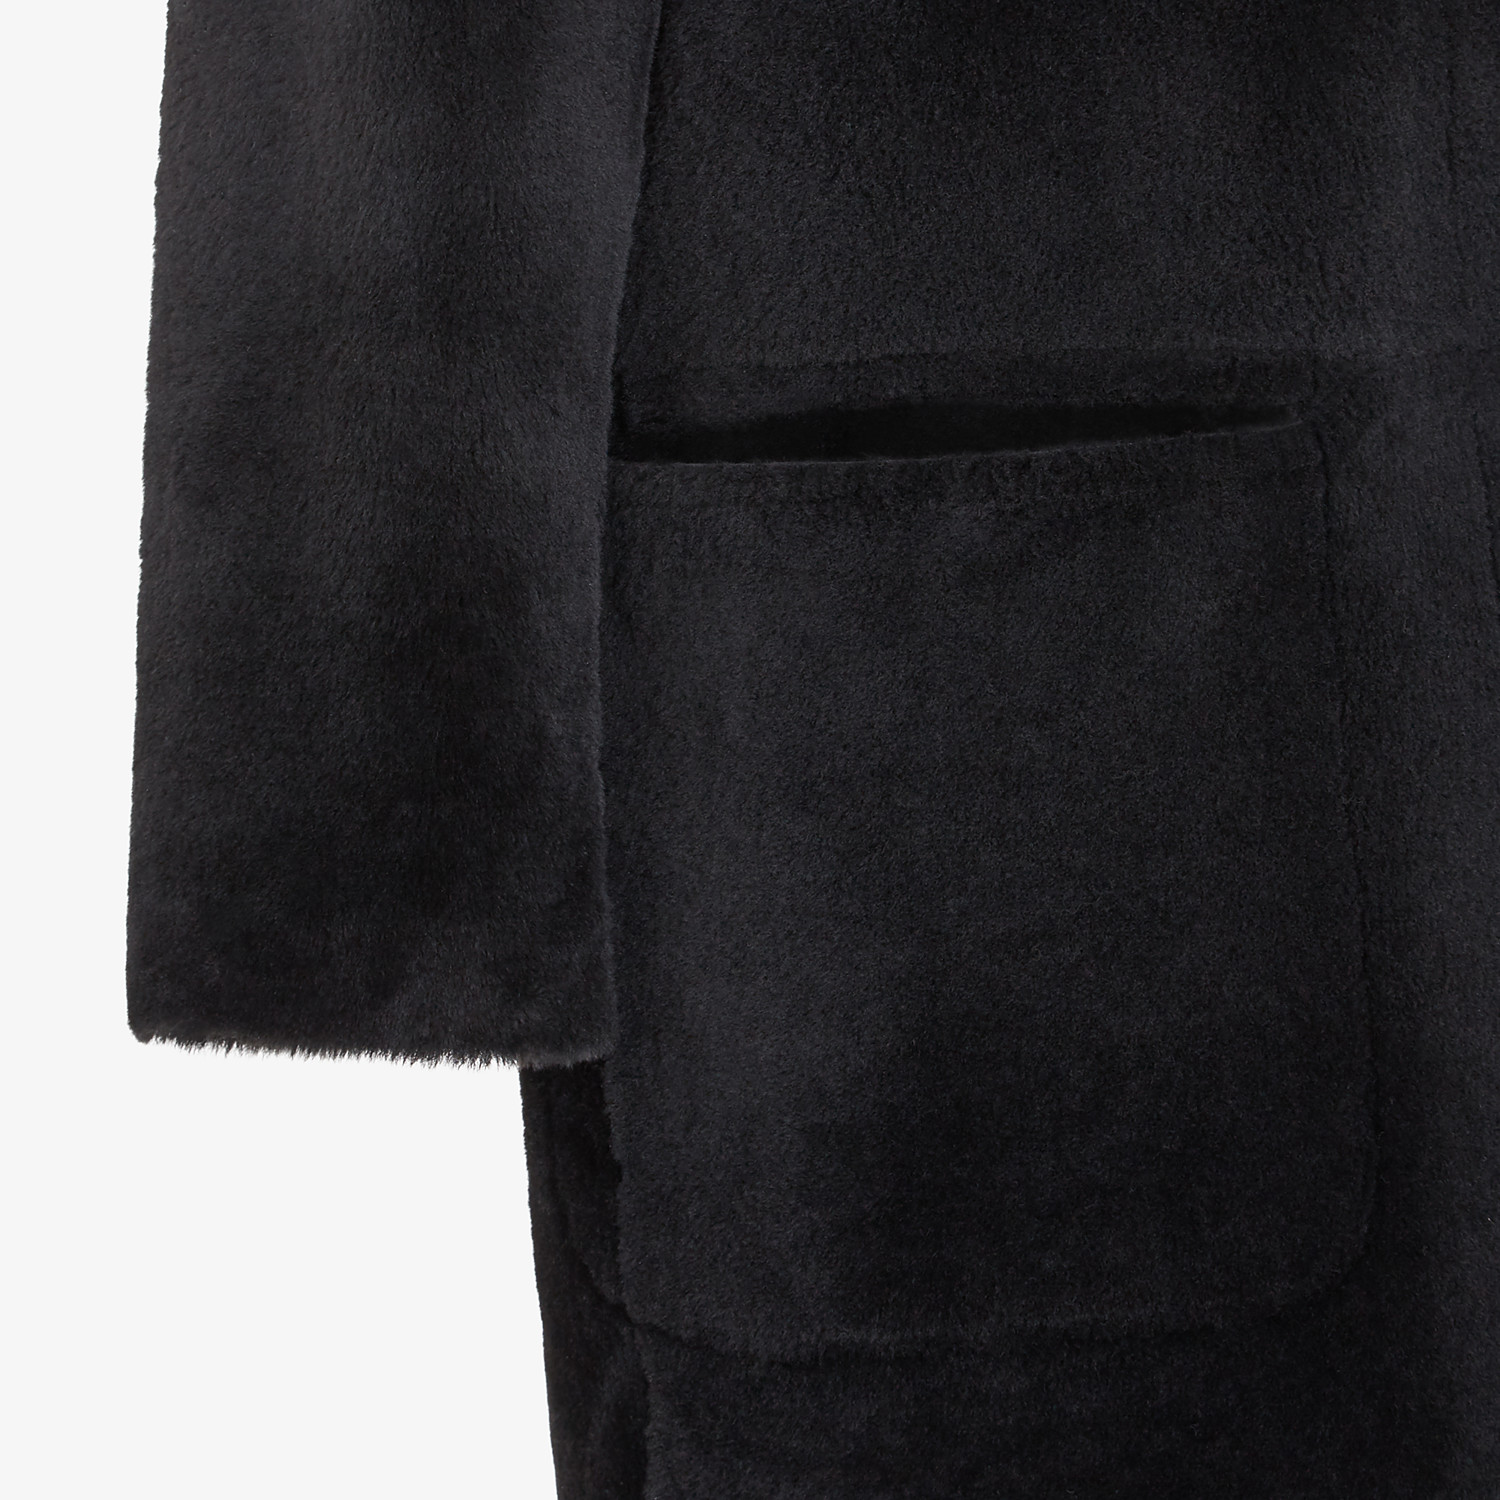 FENDI COAT - Black shearling coat - view 3 detail